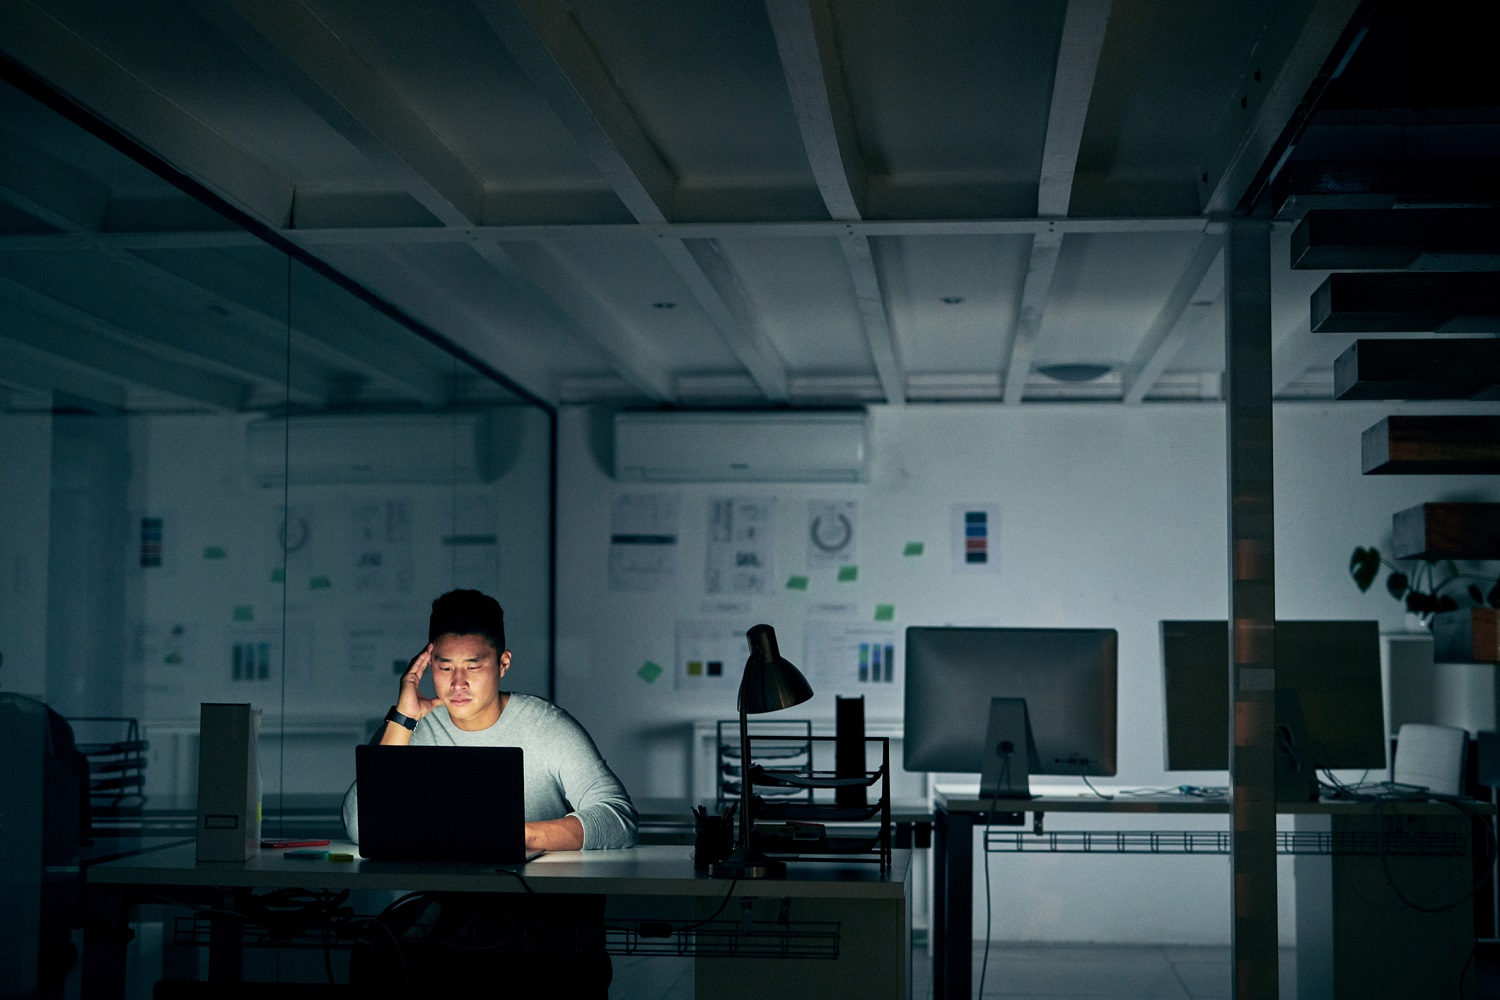 man sitting at his desk in a dark office with light only emanating from his monitor appears to be frustrated having to work late into the evening